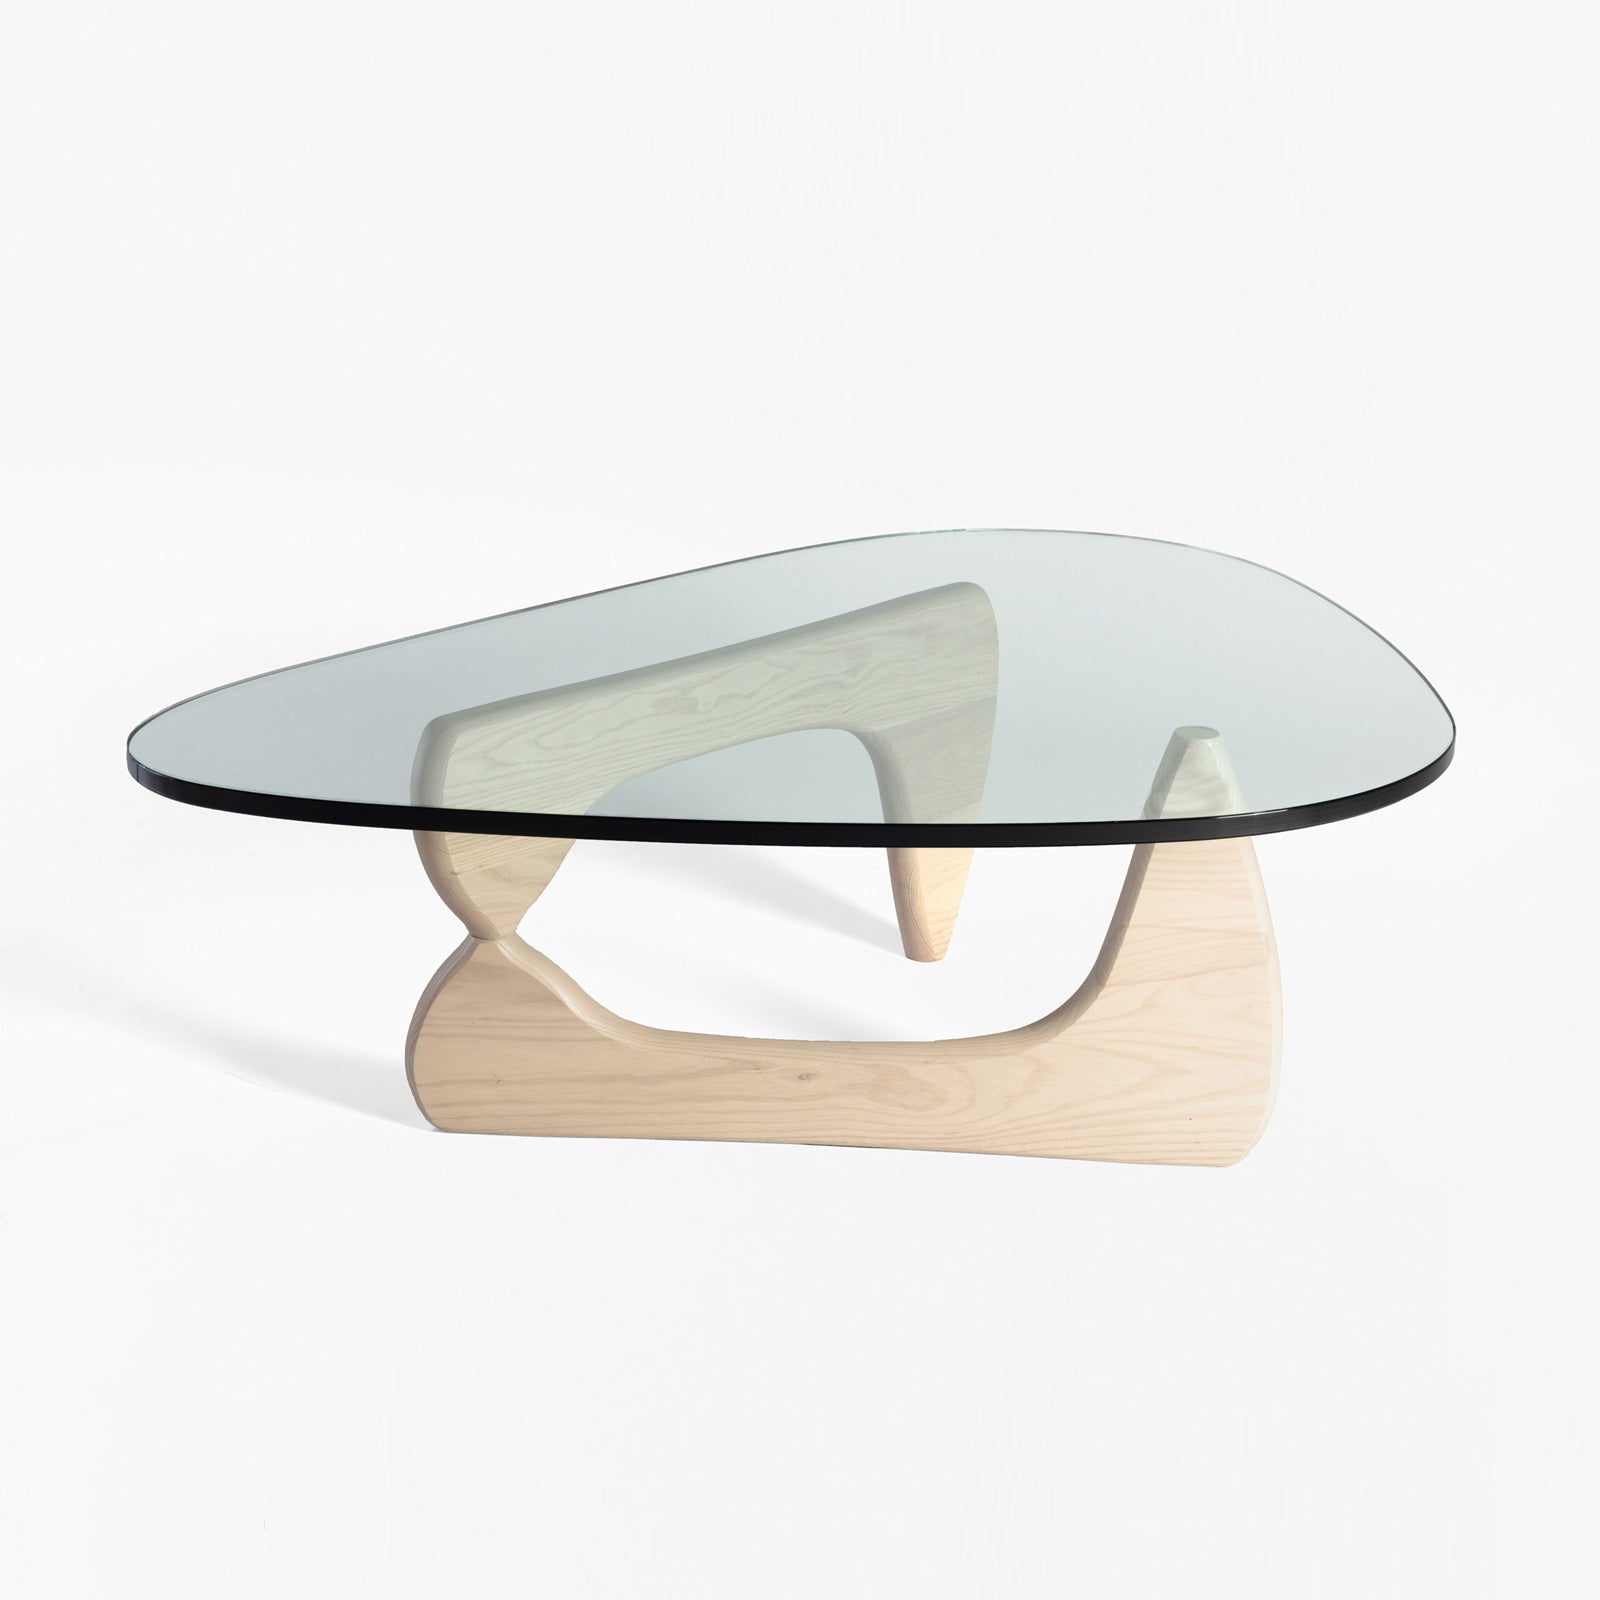 Noguchi Coffee Table, White Ash